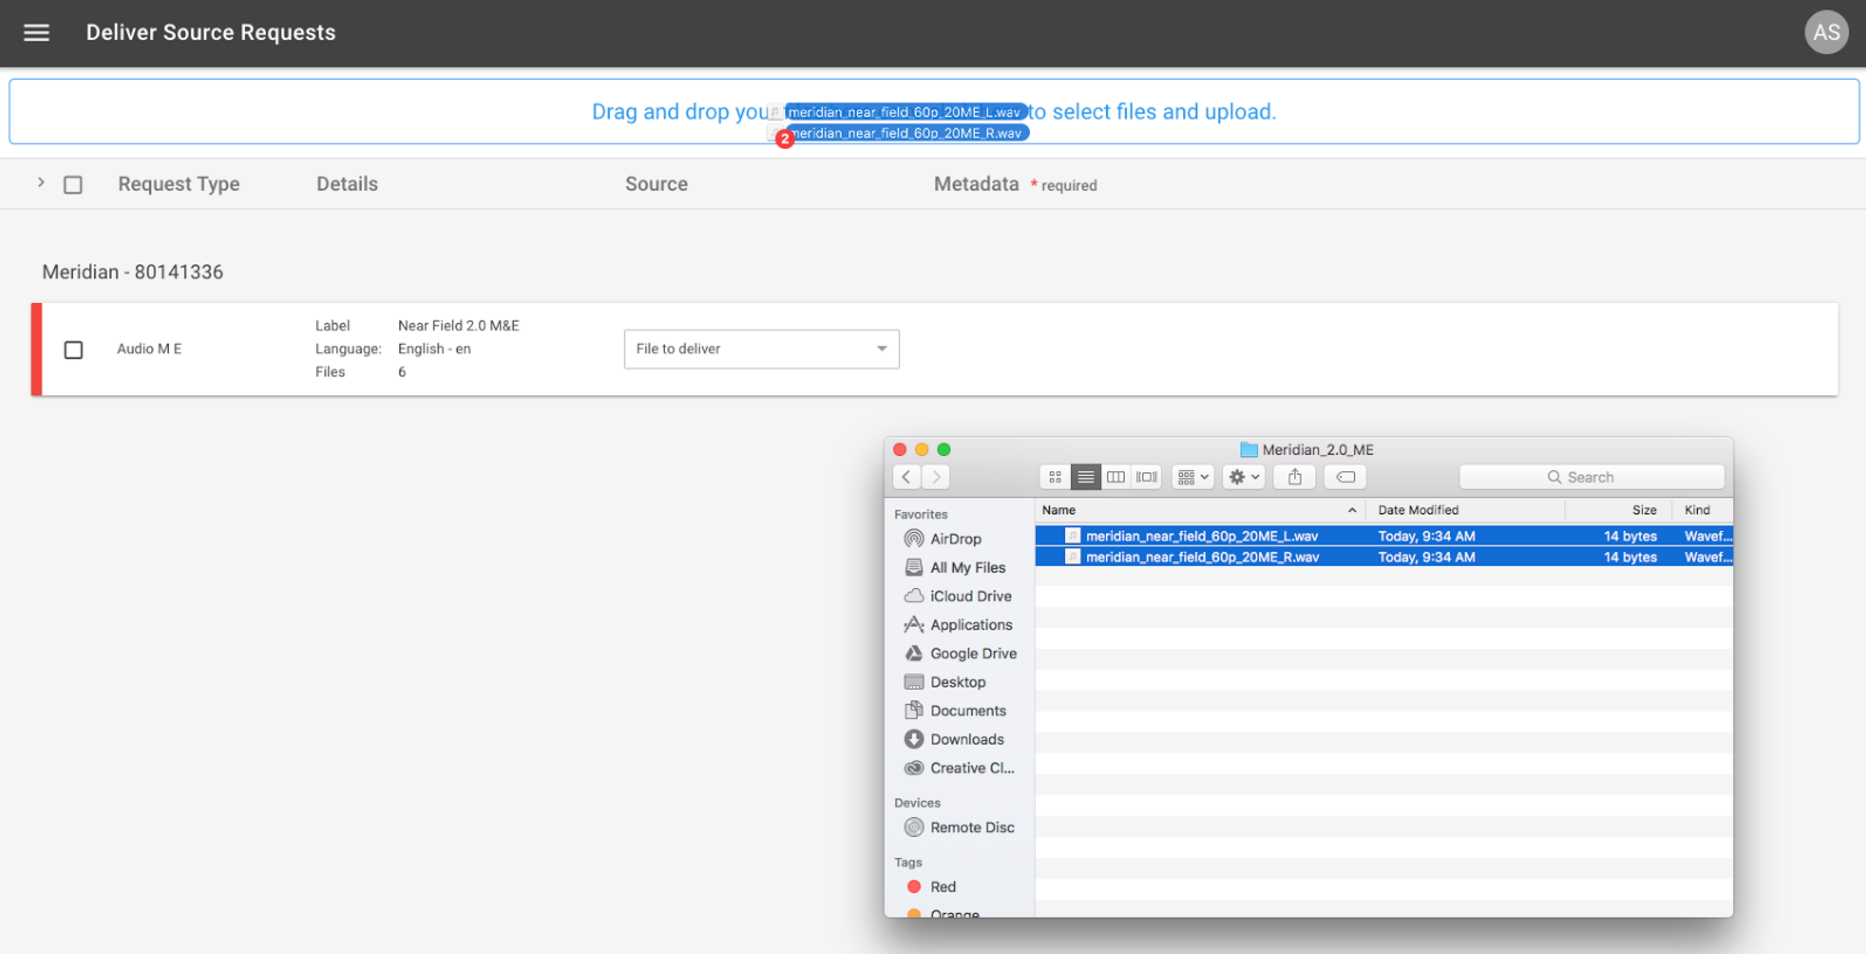 6 Drag And Drop The Files To Upload Onto The Dropzone At The Top Of The  Page